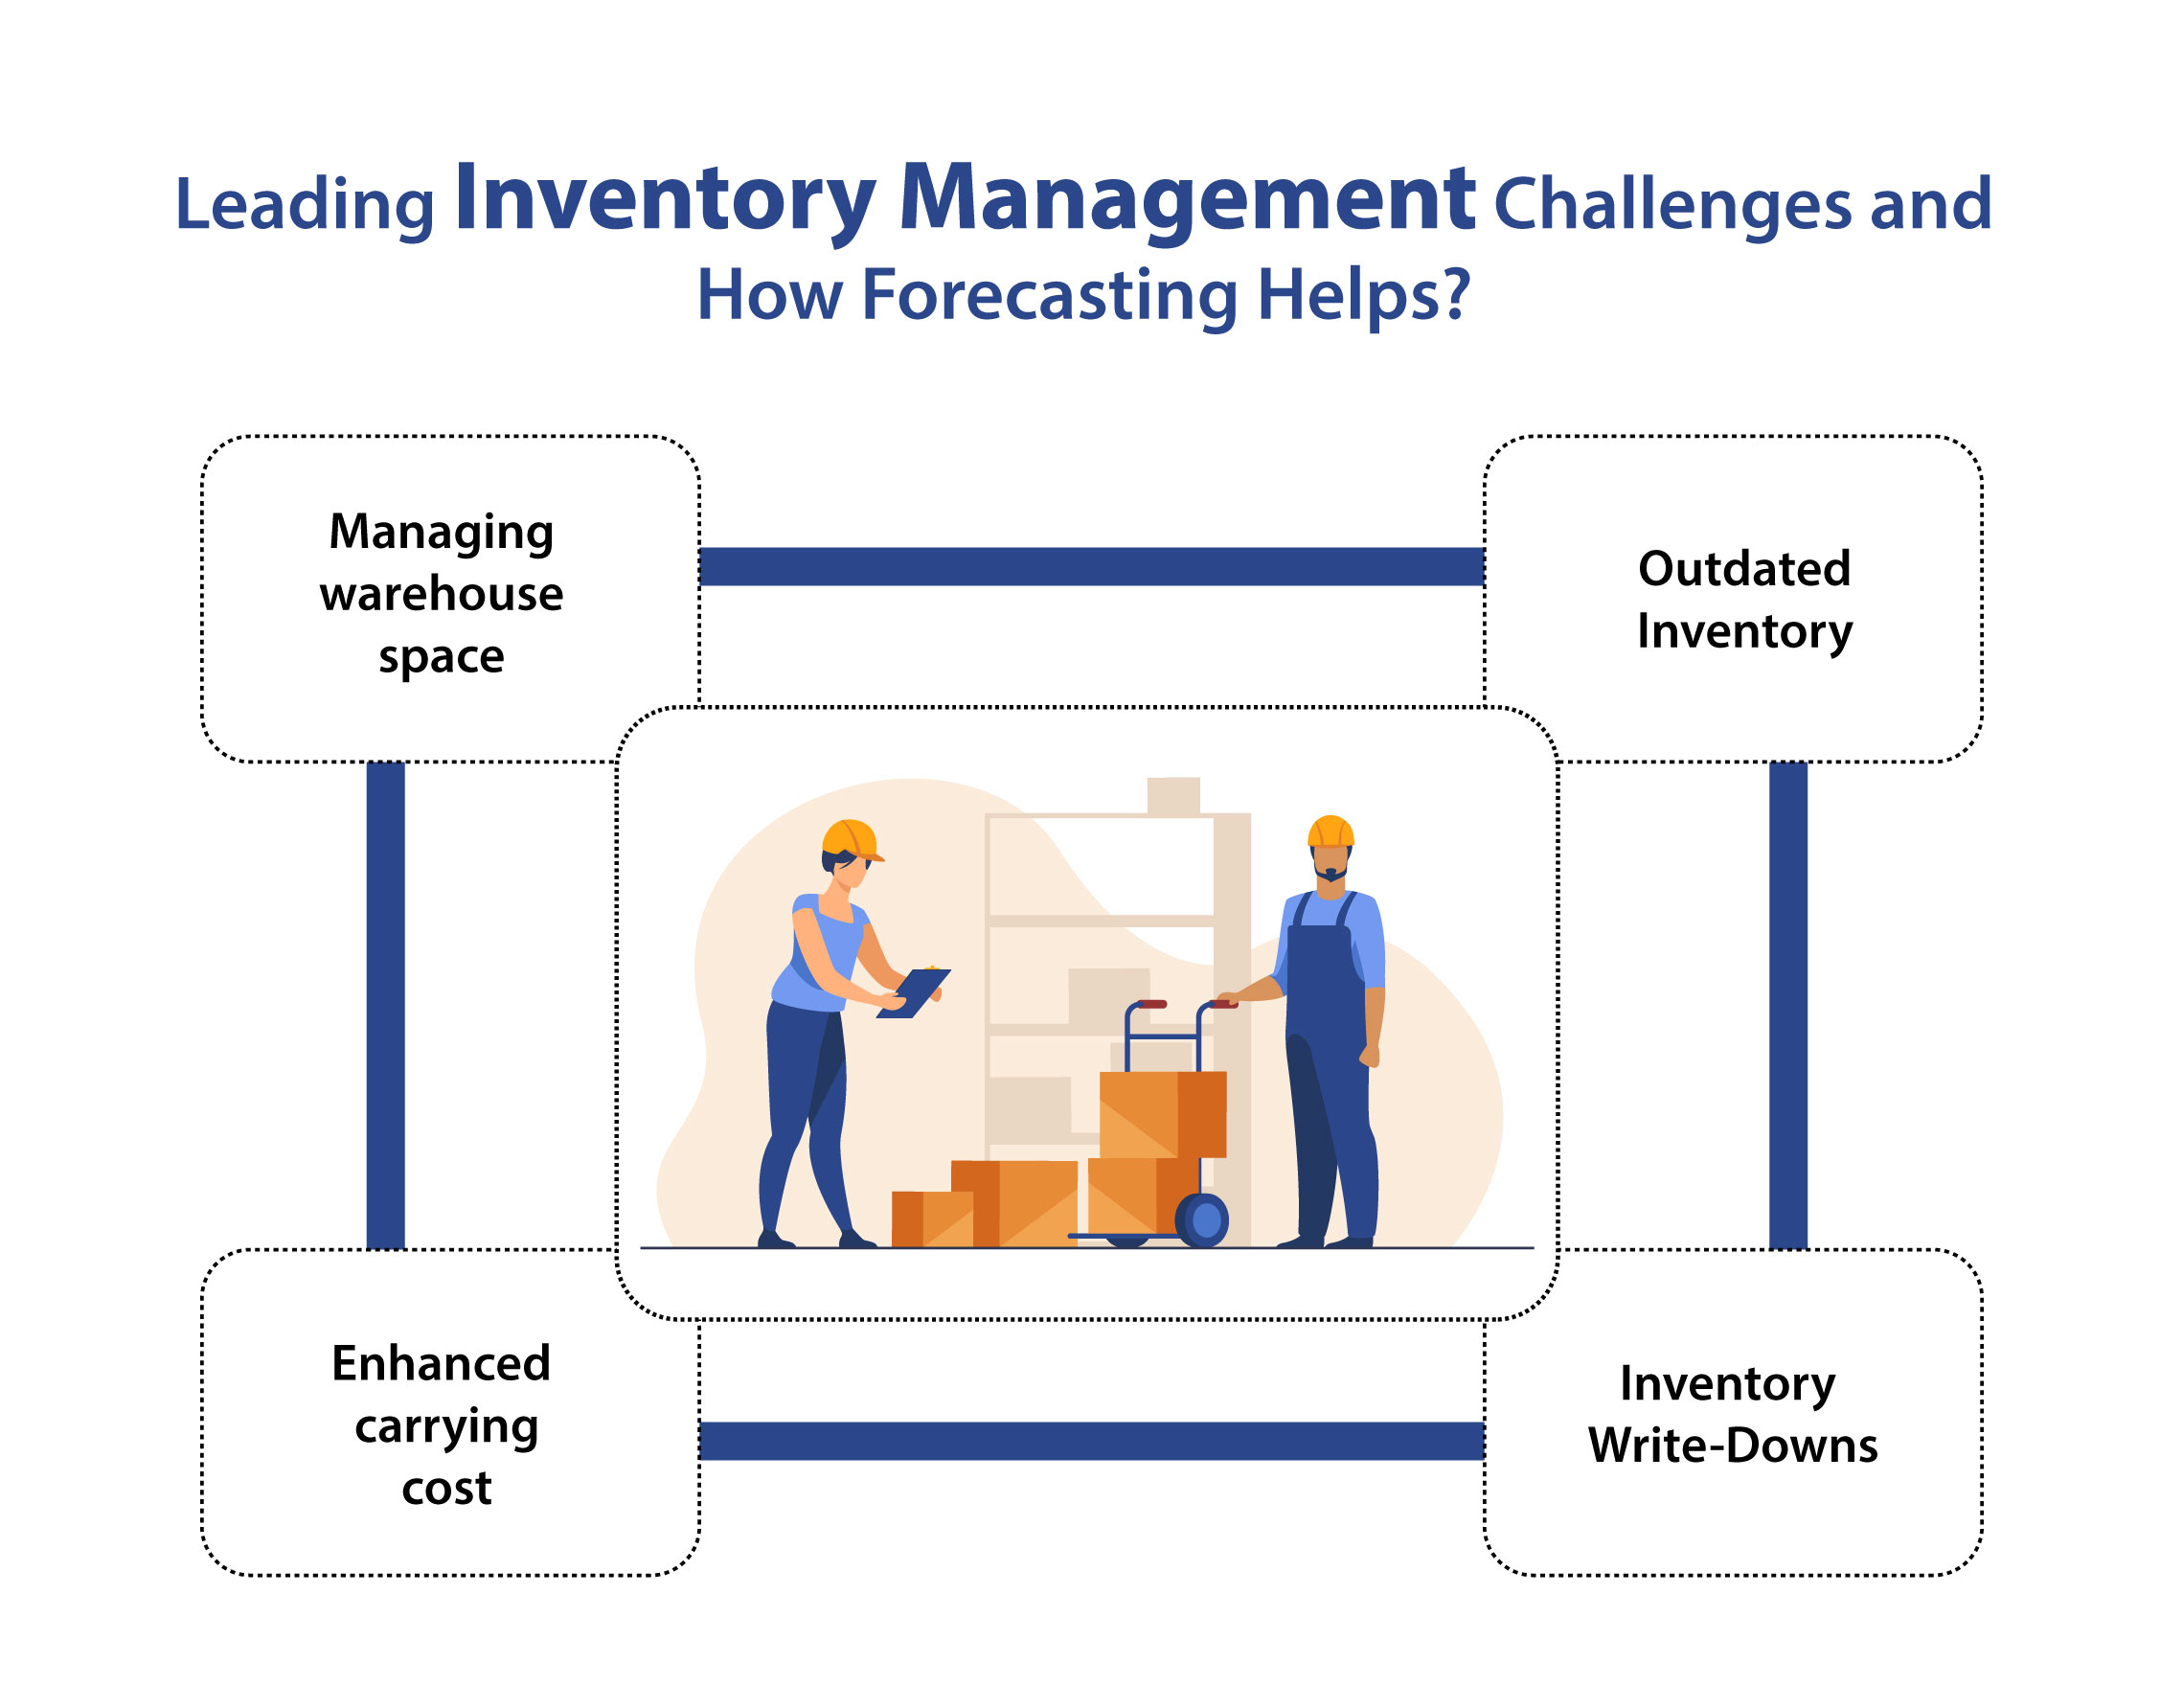 Inventory forecasting challenges